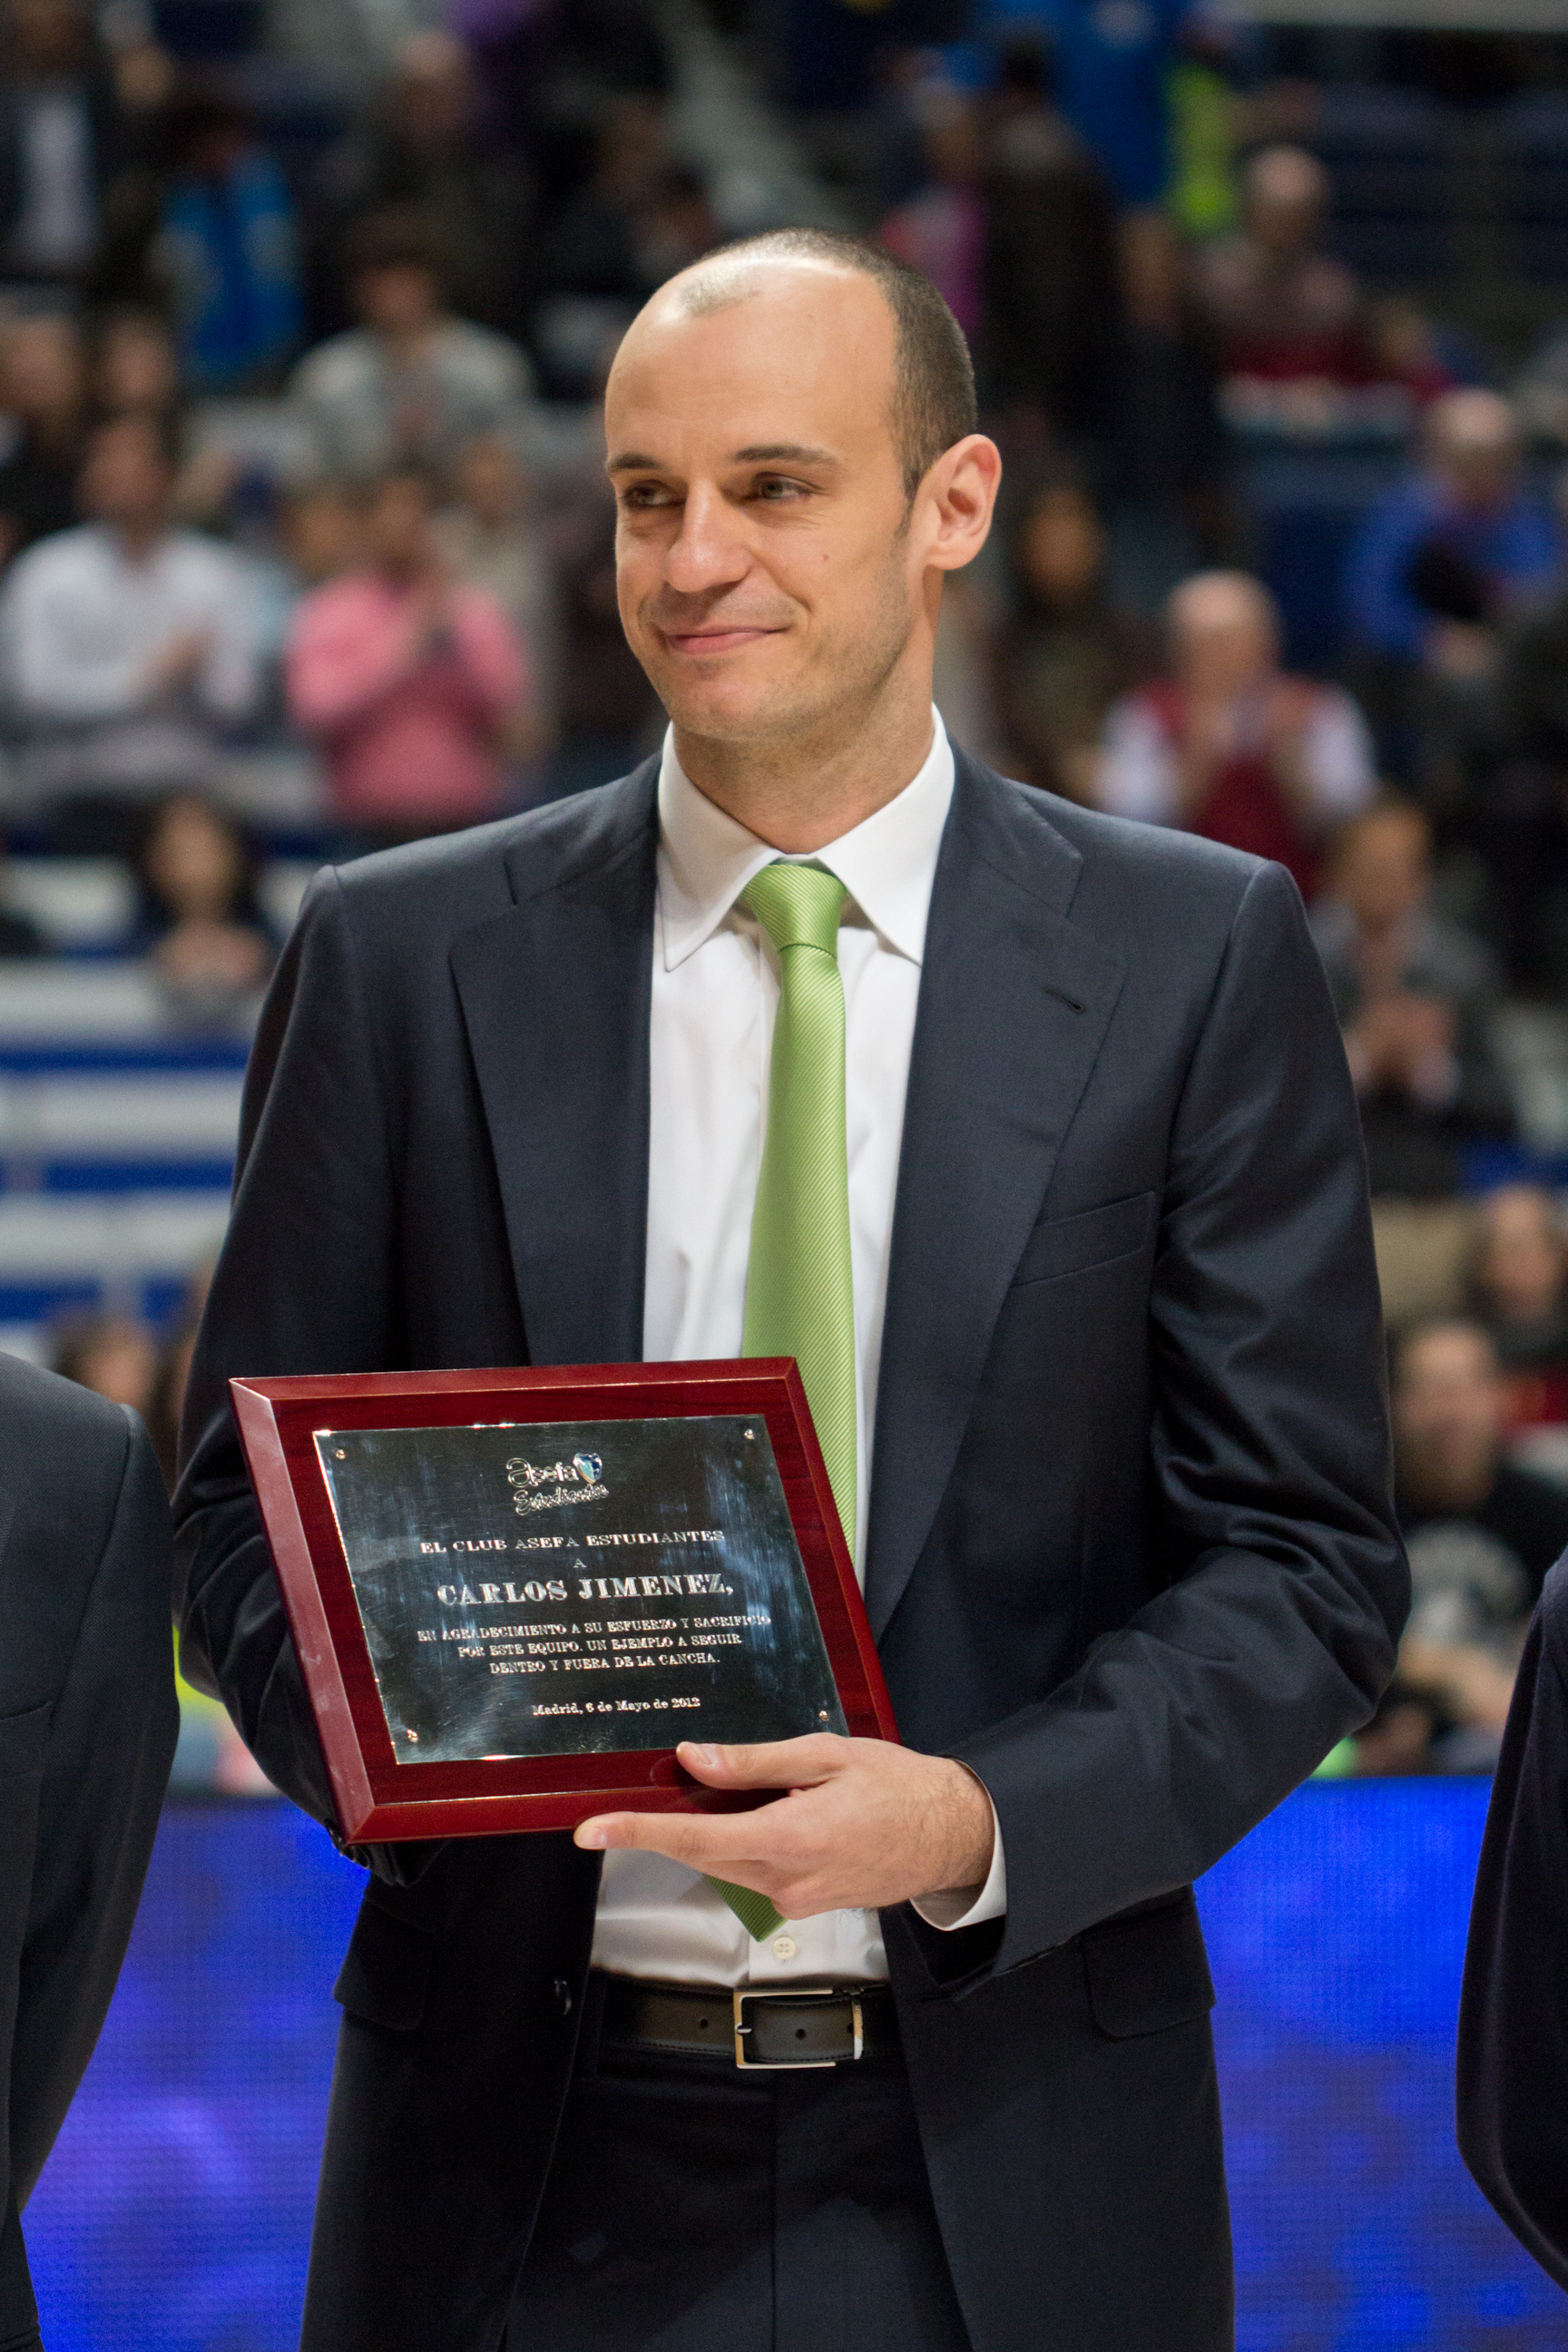 Hommage to Carlos Jiménez on February 2013 before the game between Estudiantes and Unicaja, the two clubs for which he played.